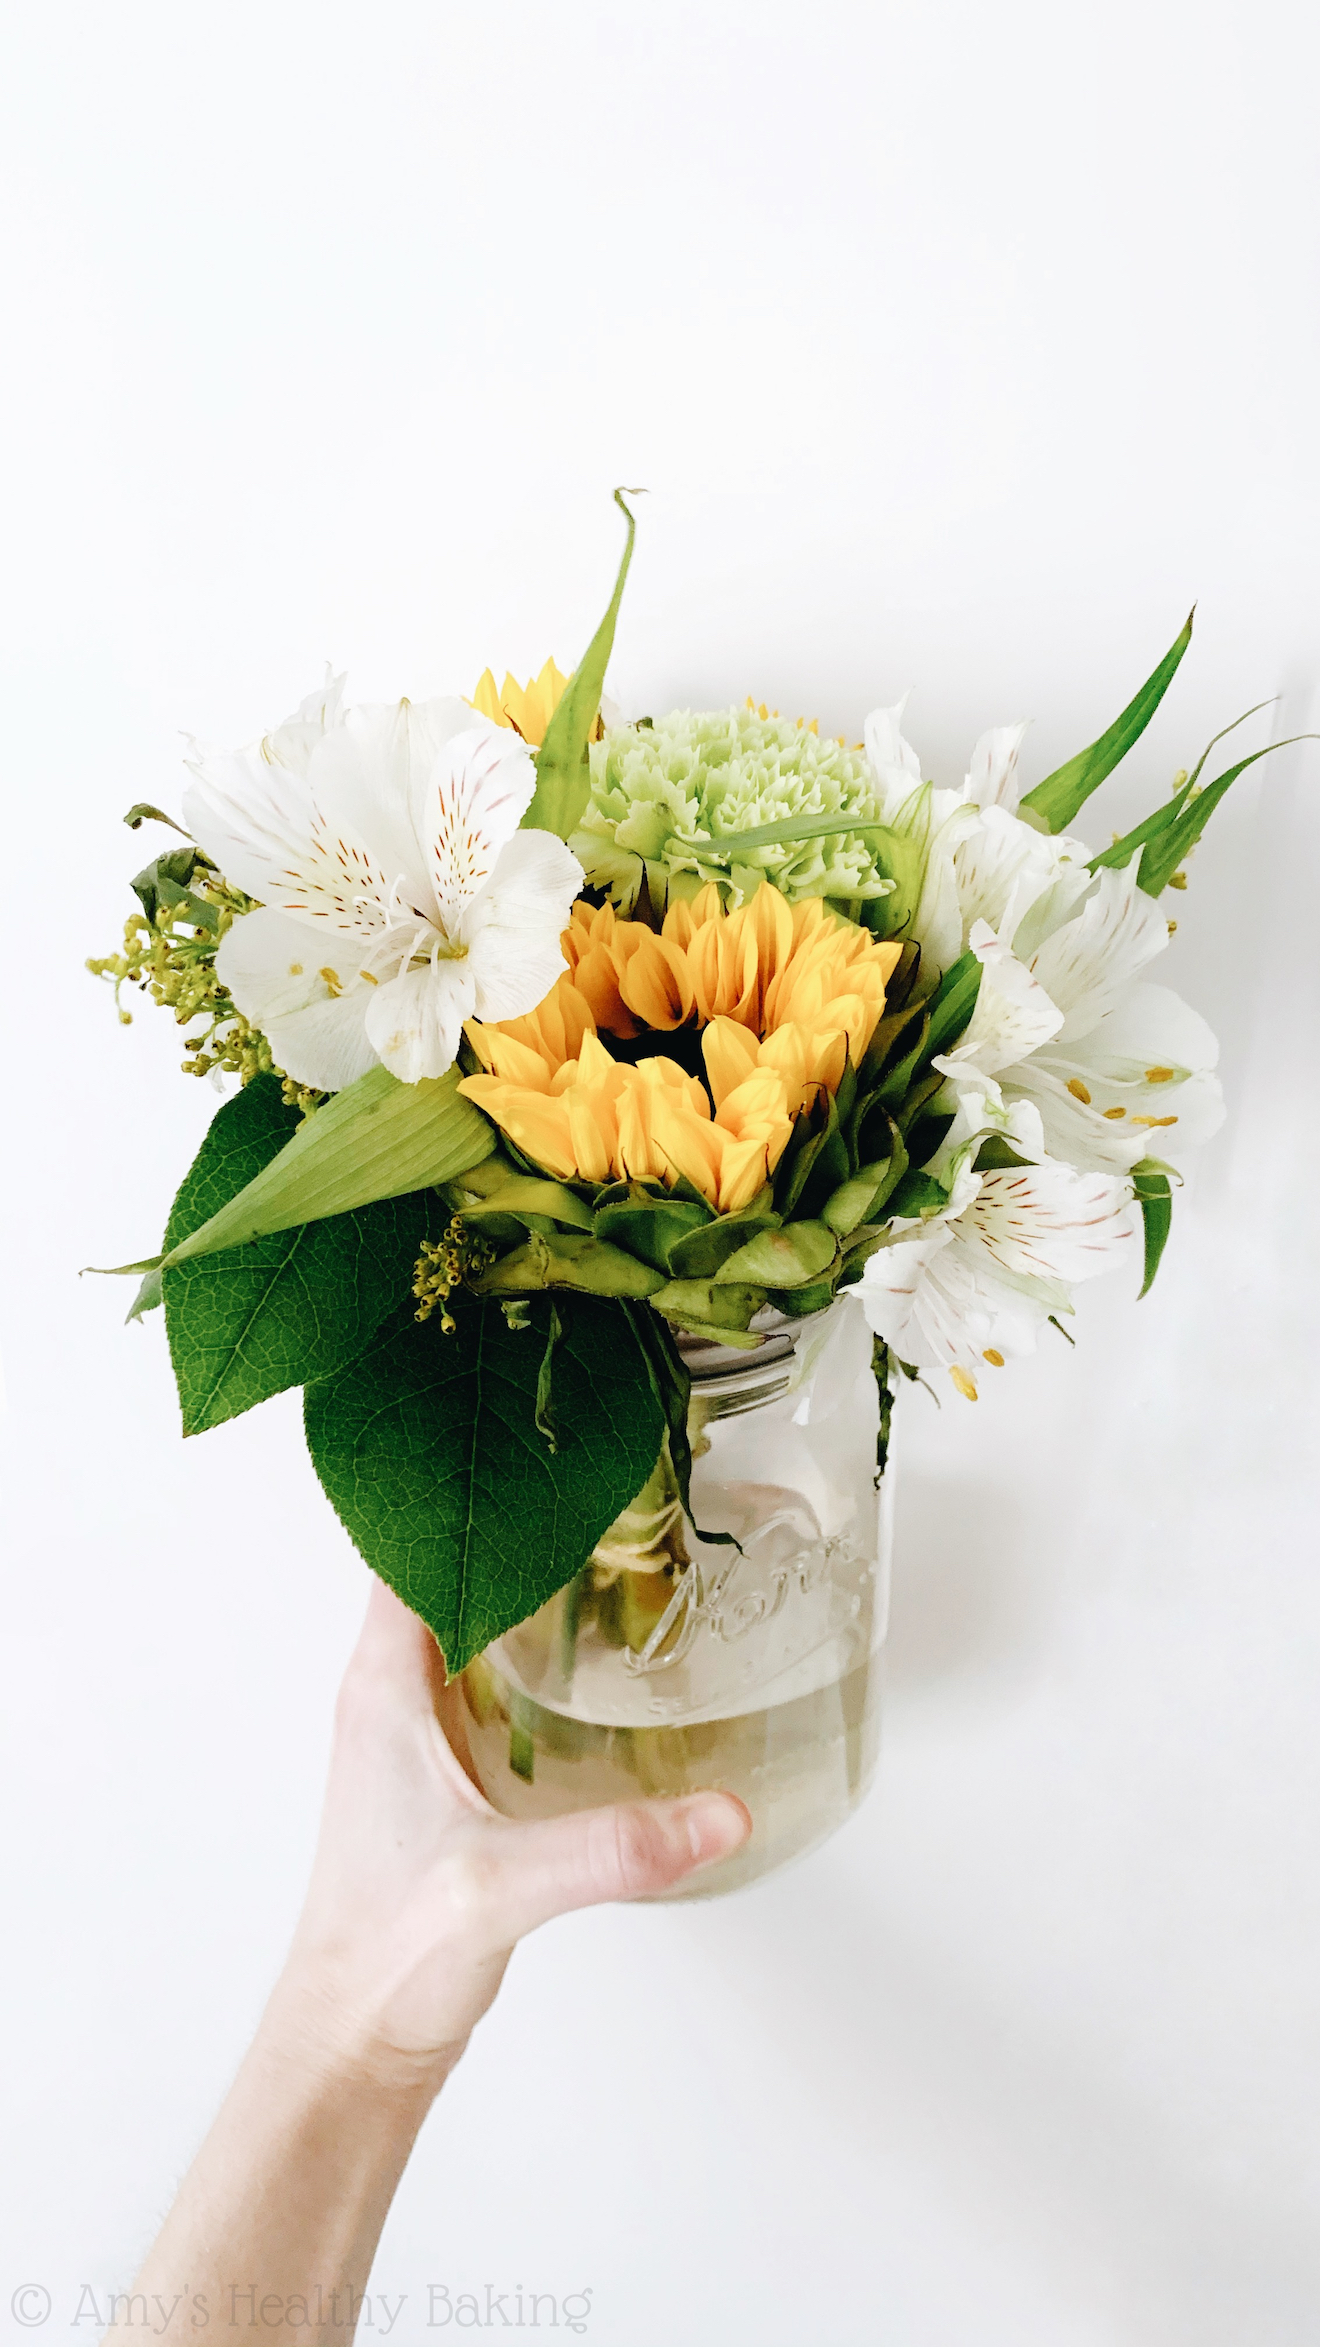 sunflower bouquet, birthday reflections & making an impact on someone's life